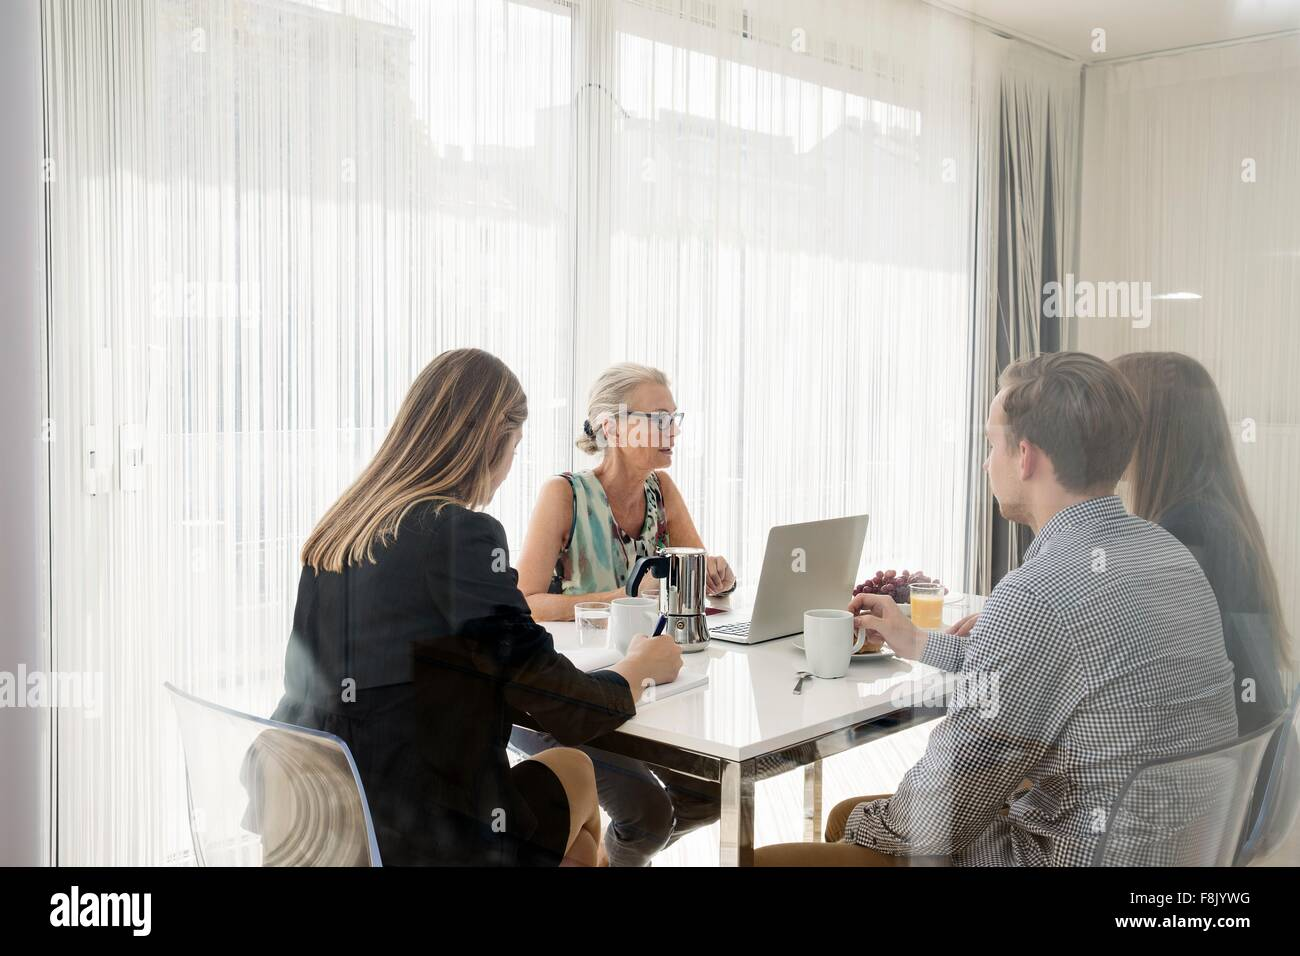 View through window of colleagues sitting at table having business breakfast meeting - Stock Image